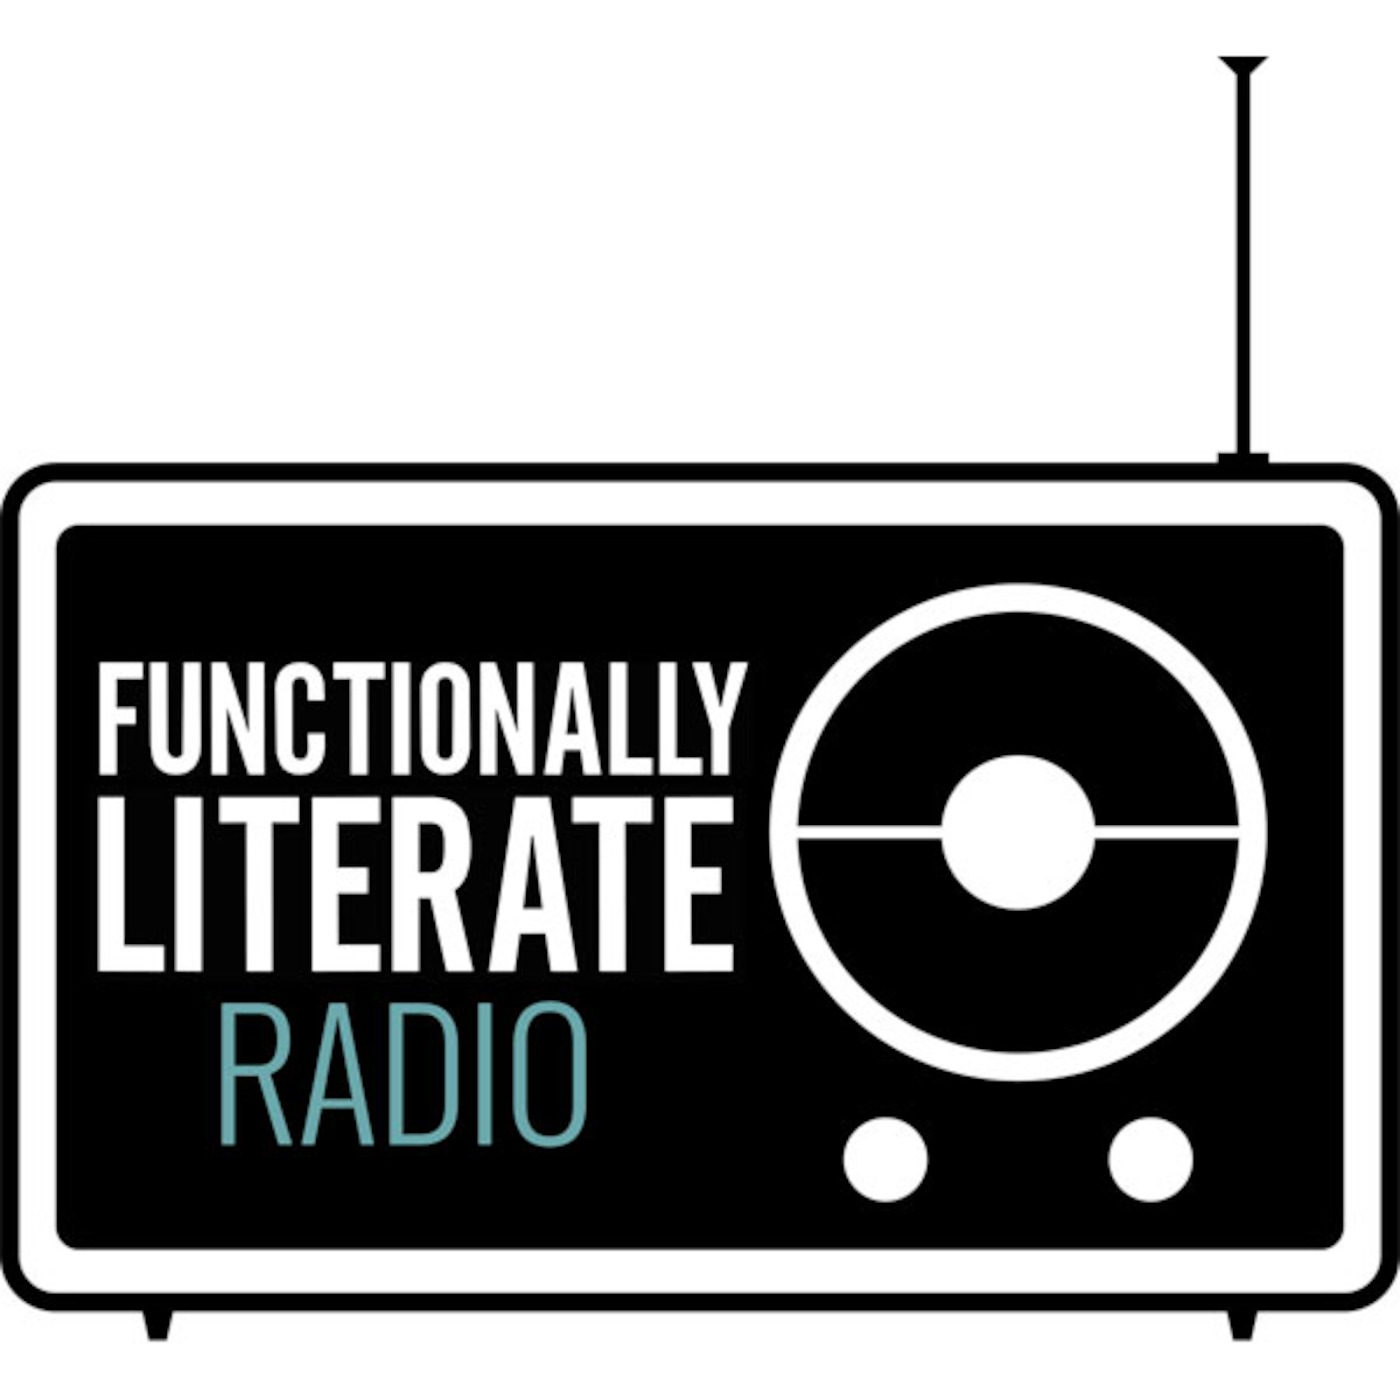 Functionally Literate Radio